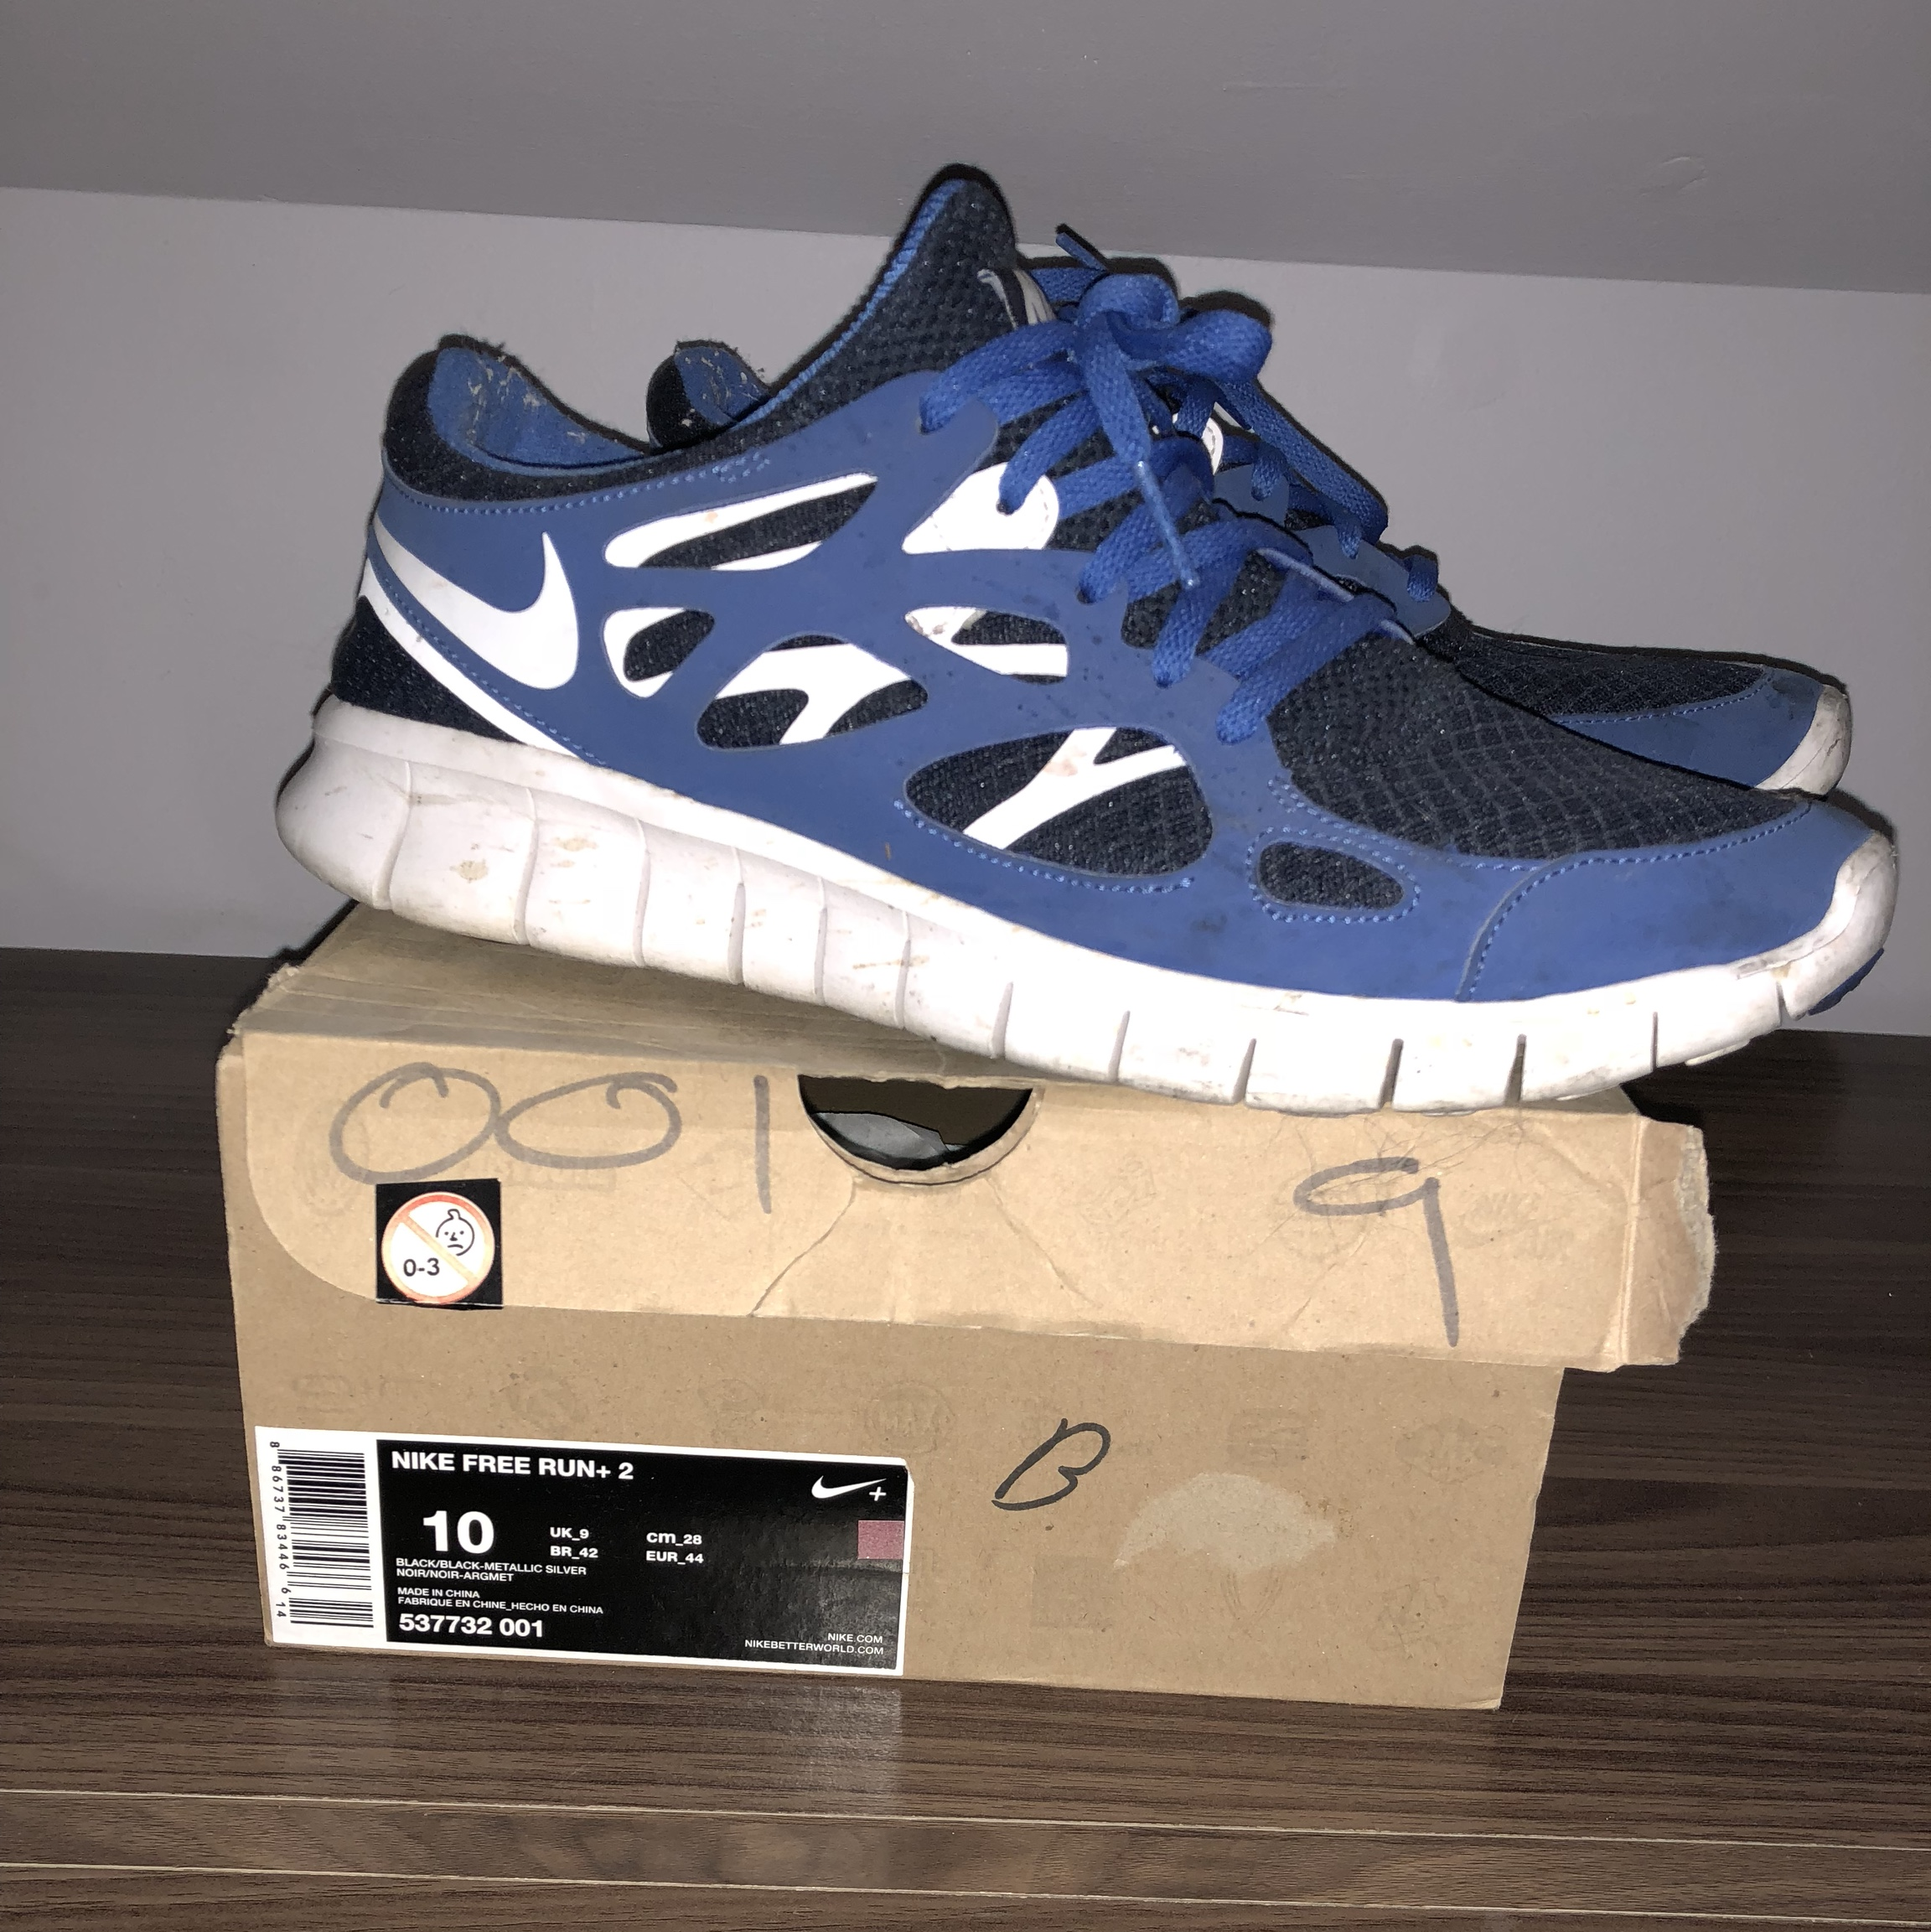 uk 9 Nike free 2blue white size run Depop 34Lq5RAj